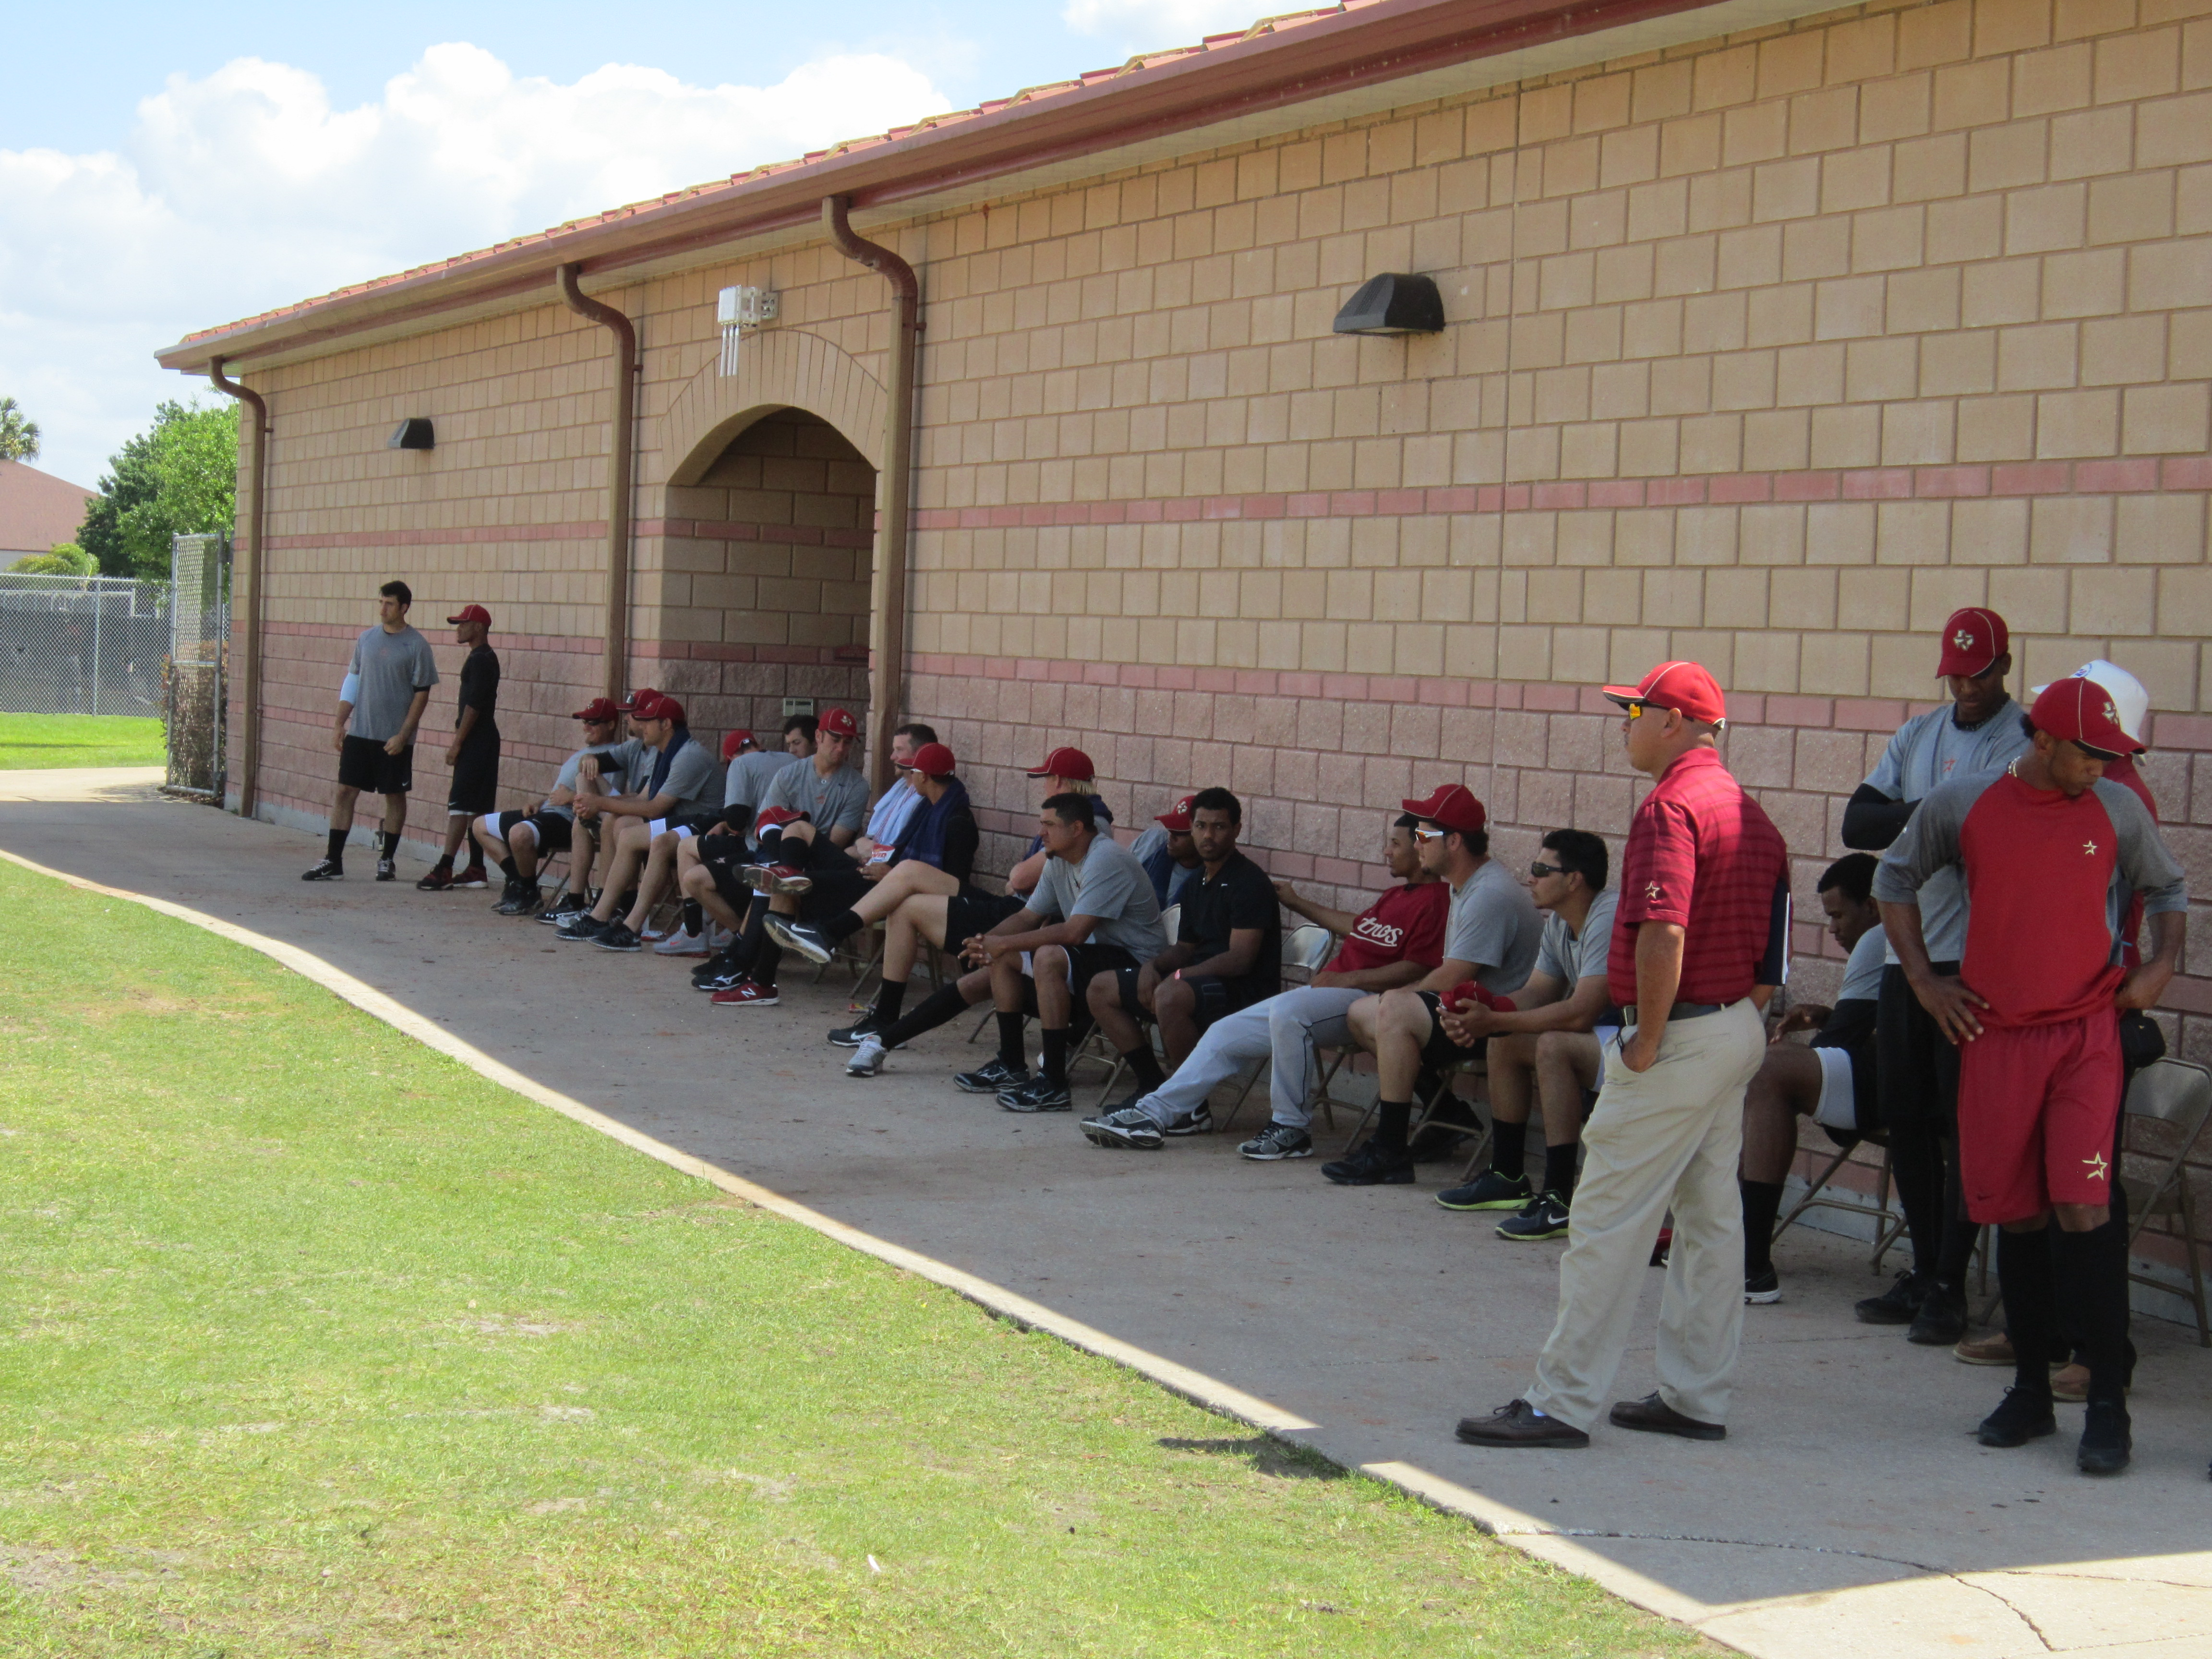 More minor leaguers watching the scrimmage